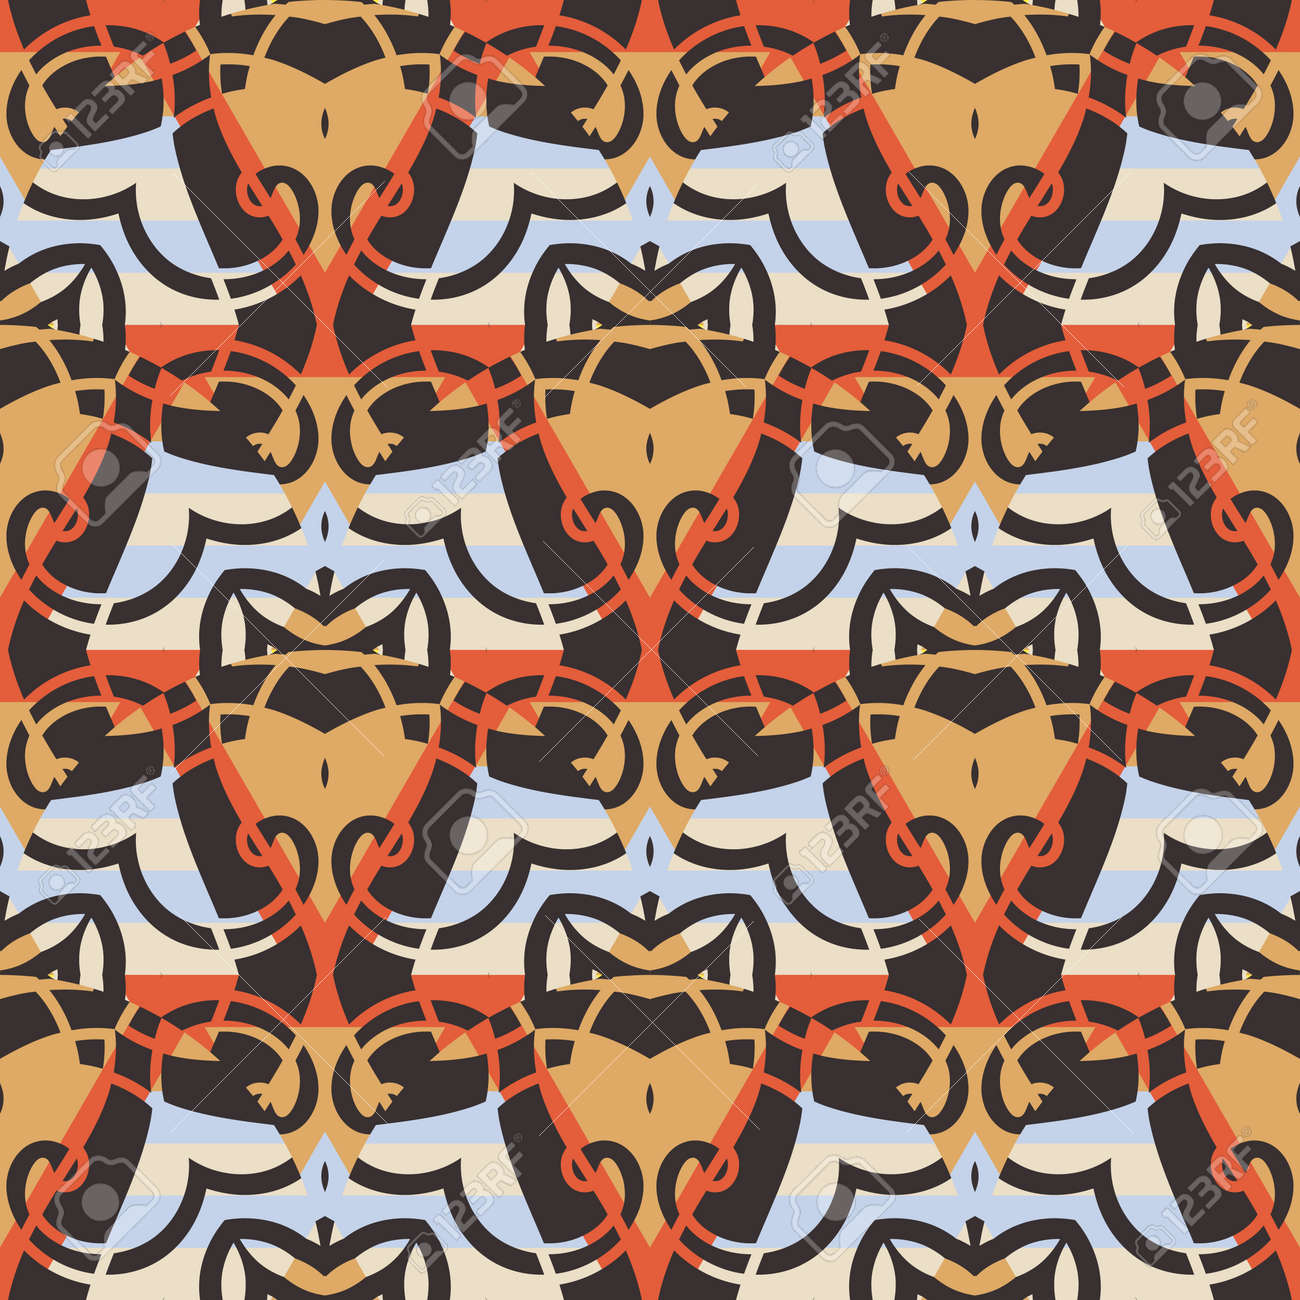 Abstract geo fish scale seamless pattern. Ornamental tile, mosaic background. Patchwork infinity card. Modern geometric motifs. - 167068573